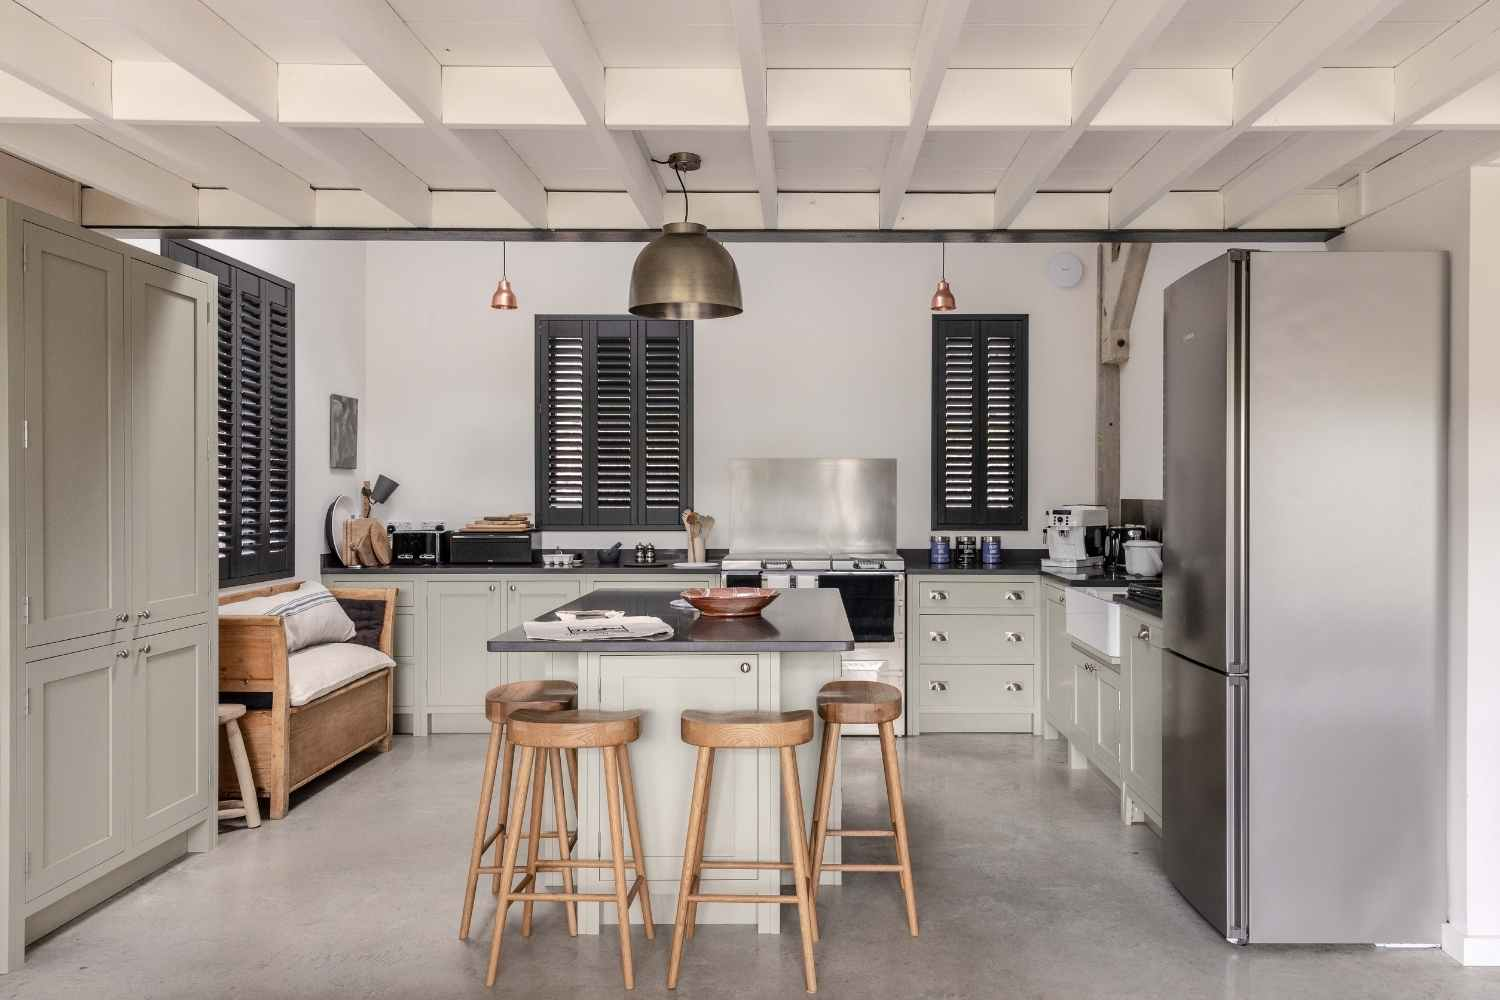 Open plan kitchen with sociable island